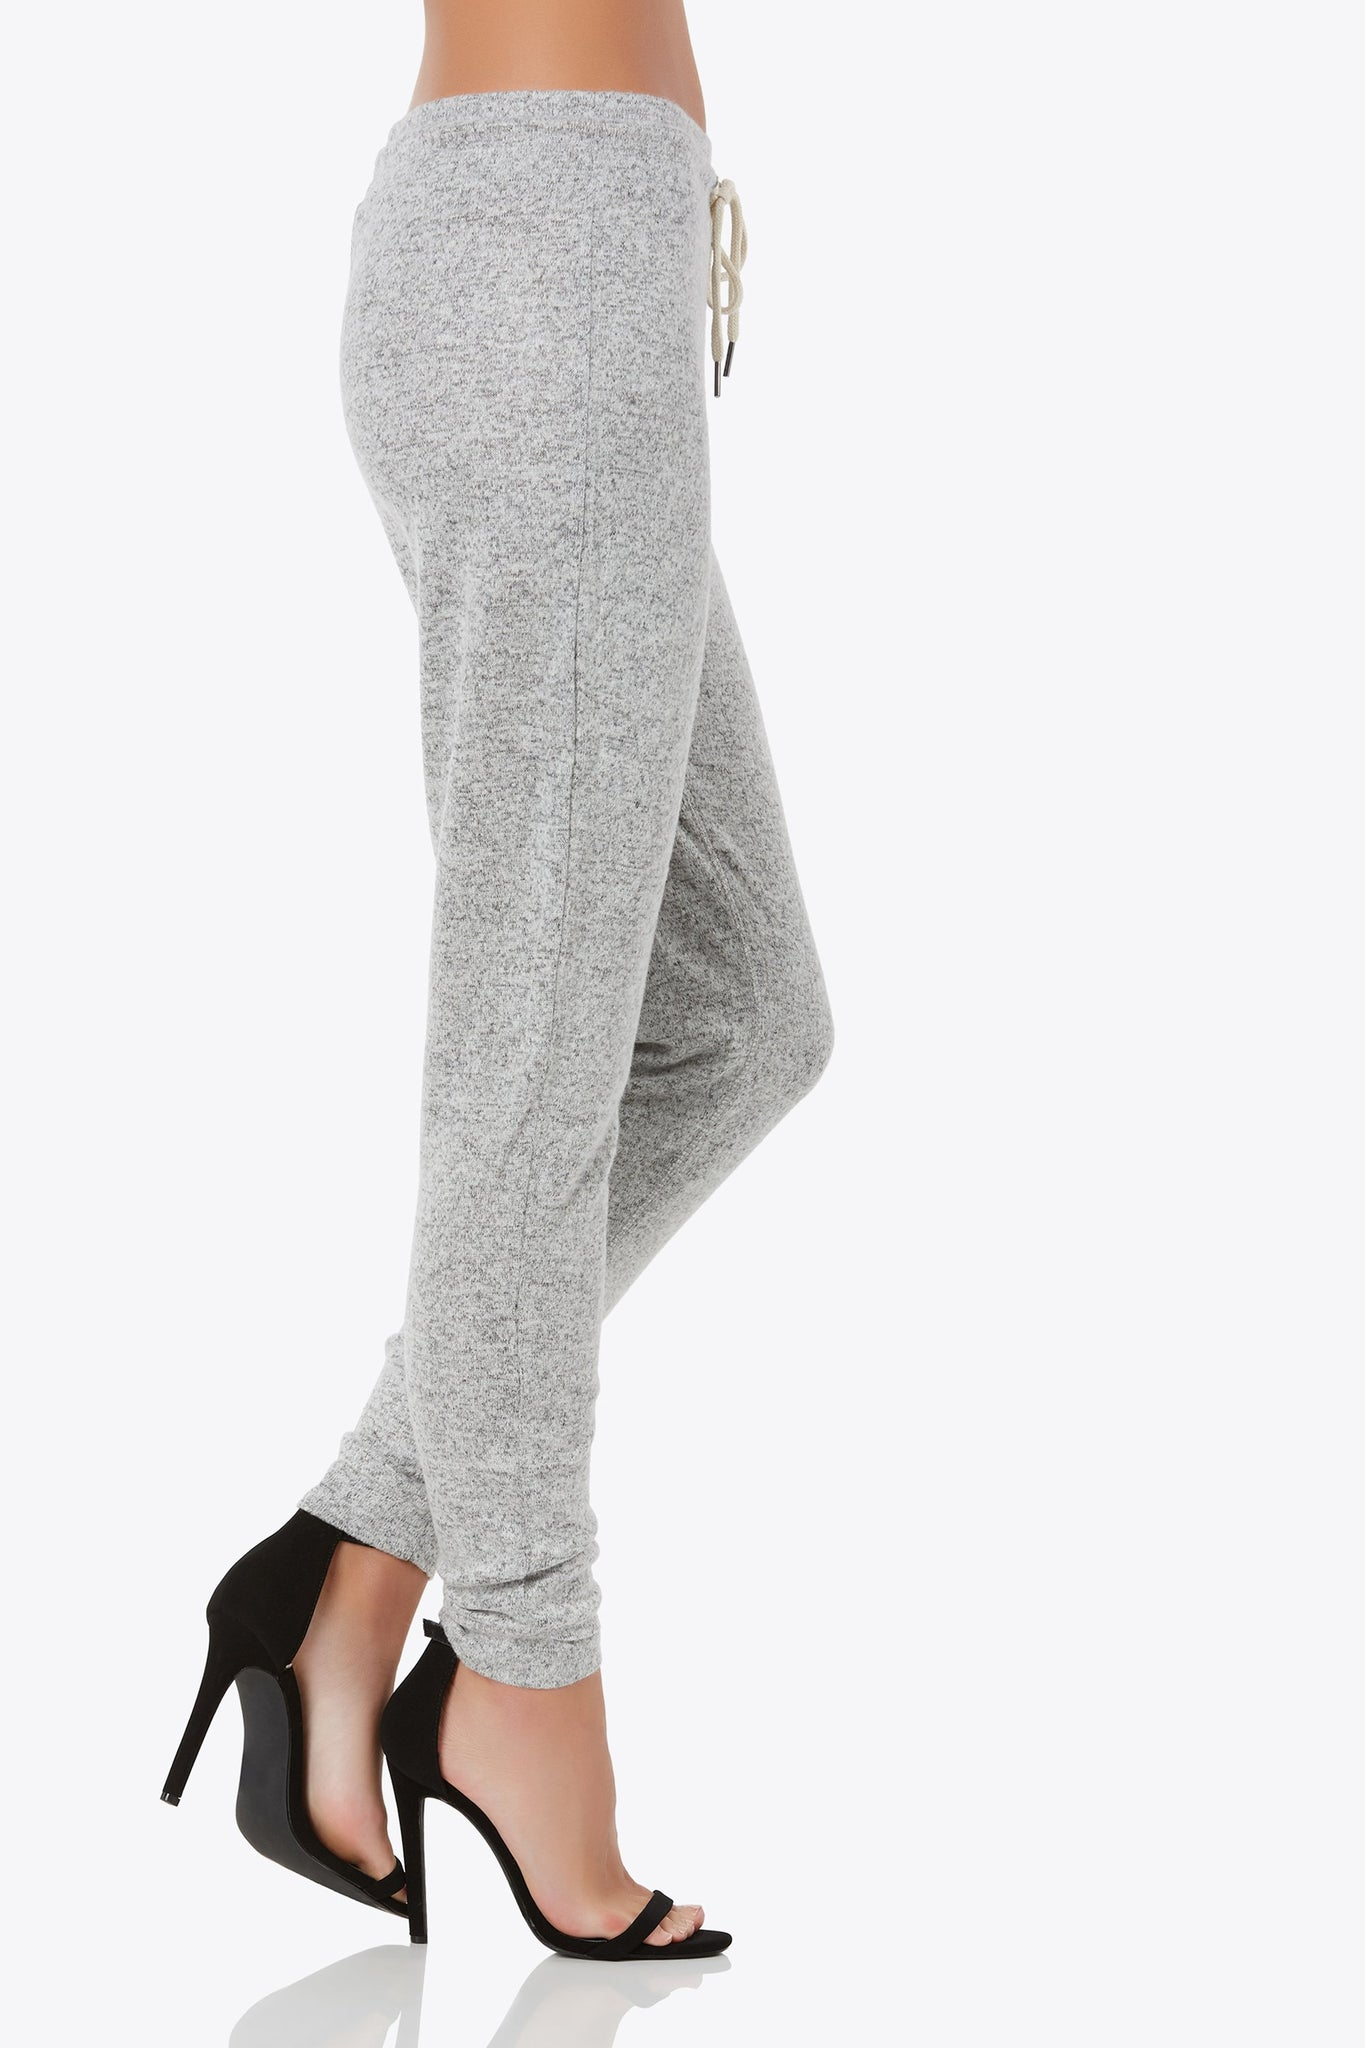 Relax all day in this soft knit drawstring joggers with elastic waistband and contrast drawstrings.